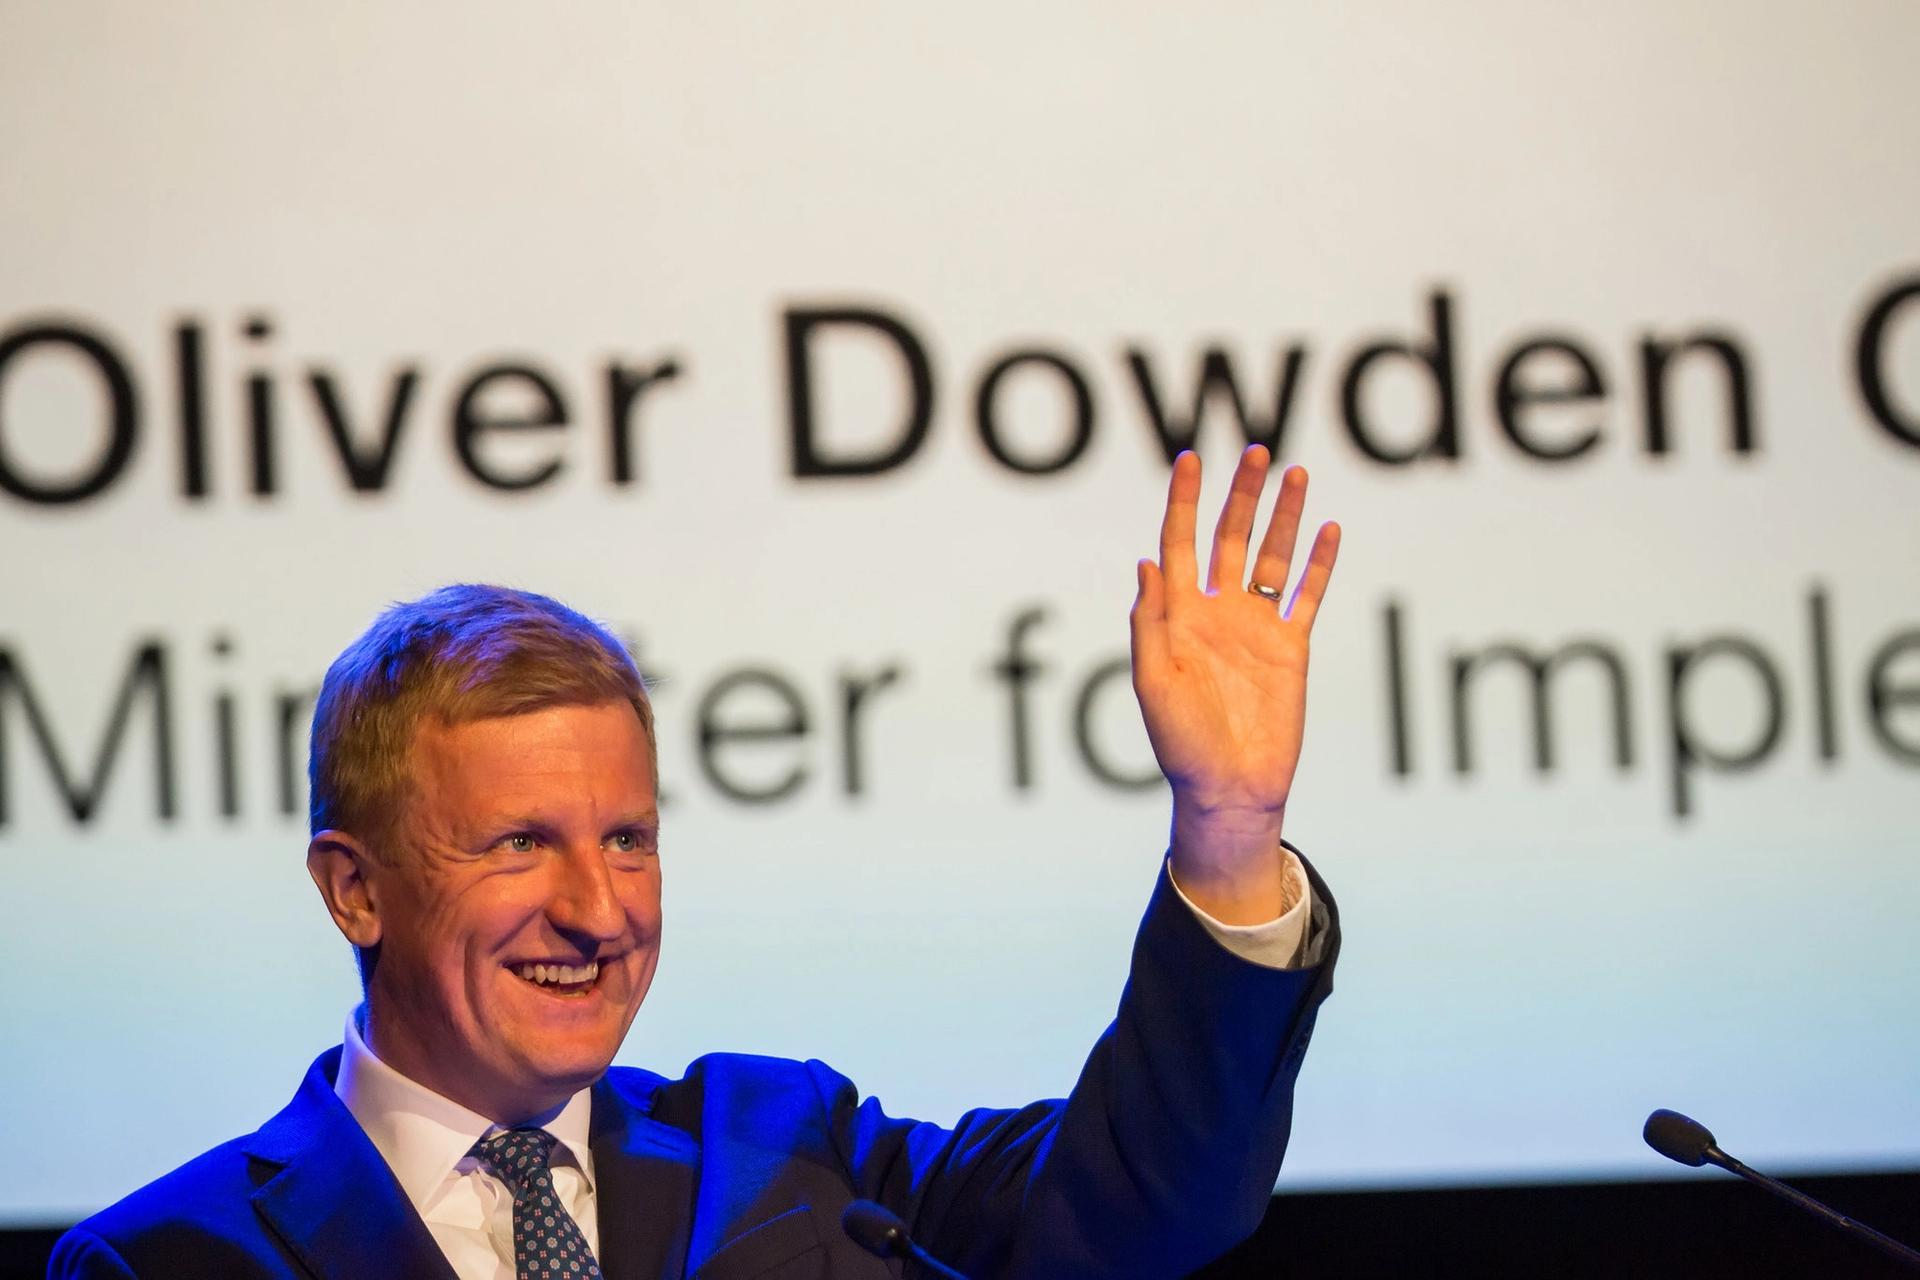 UK Culture secretary Oliver Dowden has garnered favour with his Conservative Party—but at the cost of the culture sector Photo: gdsteam